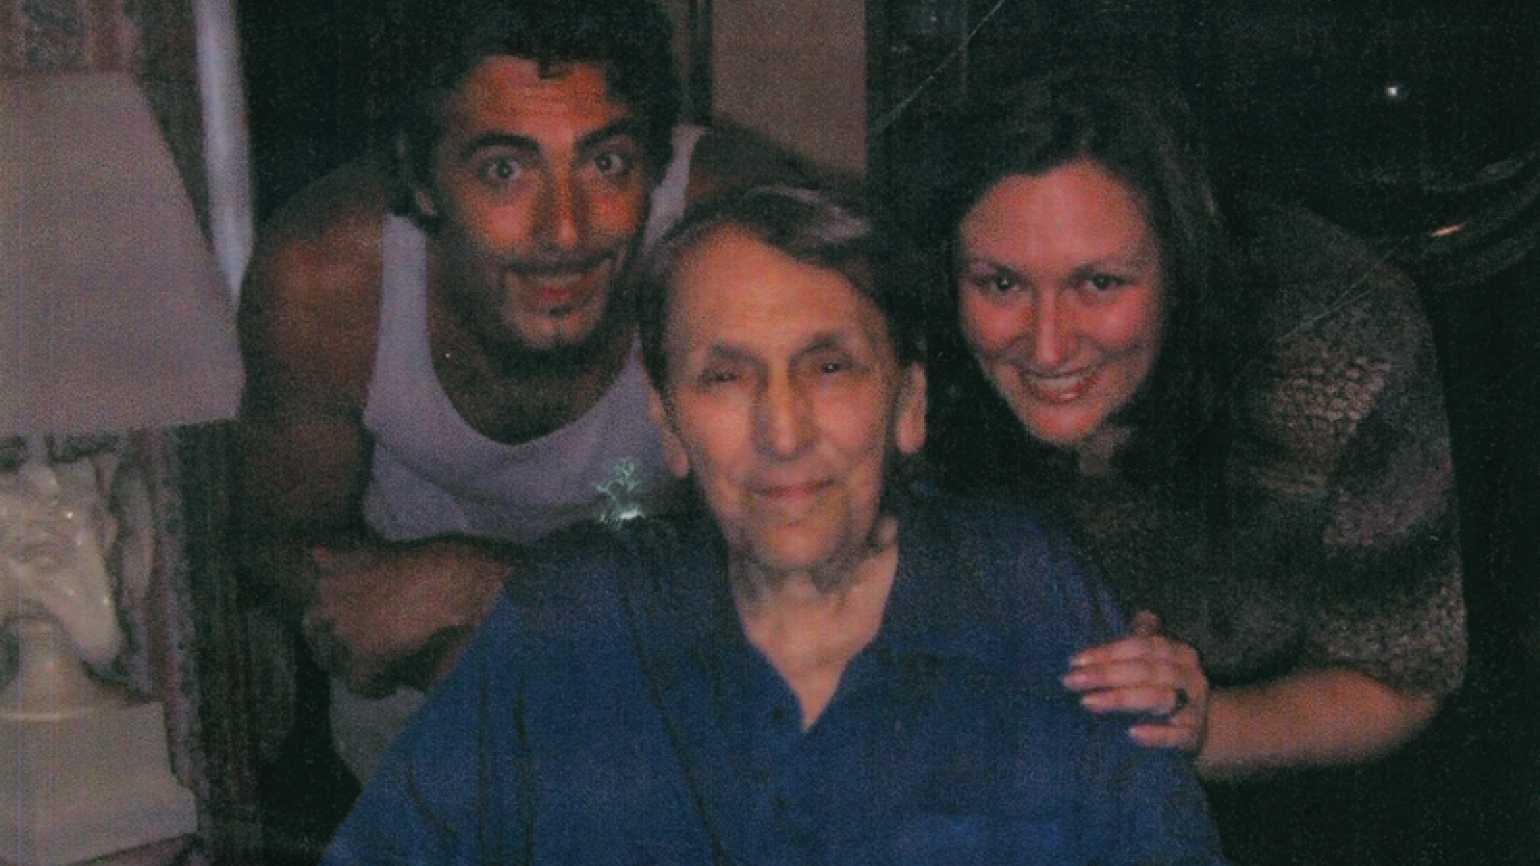 Antoinette Rainone, Angelo and her father